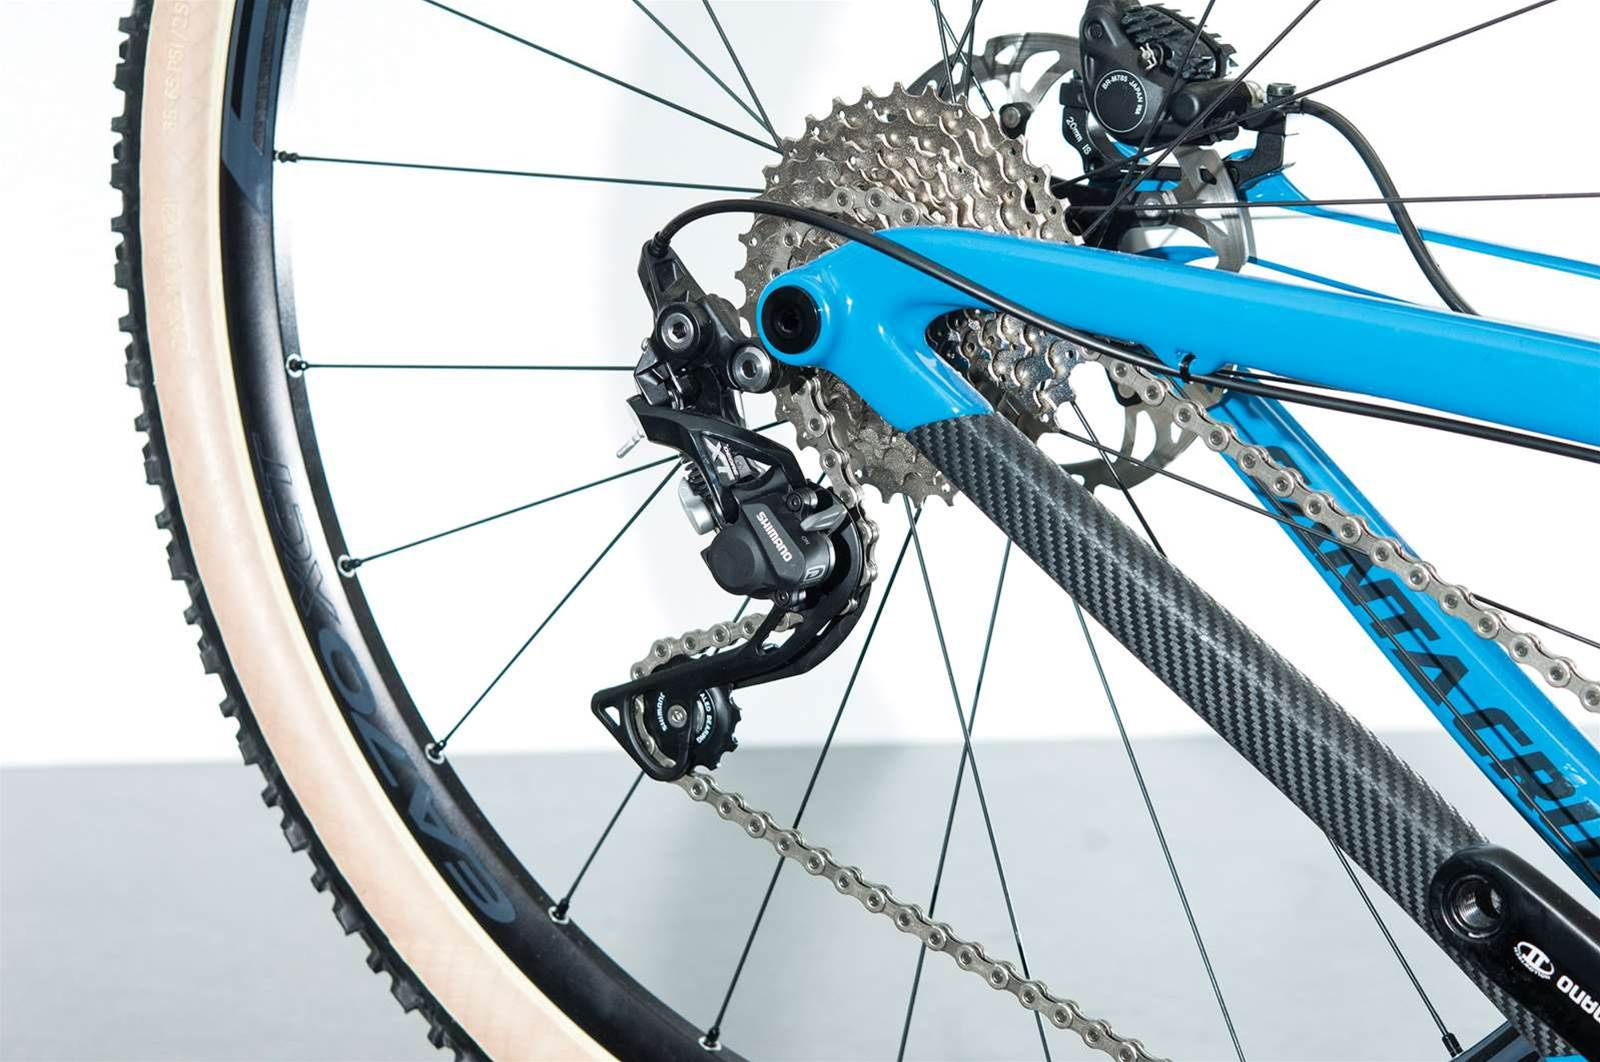 Tuning your clutch derailleur